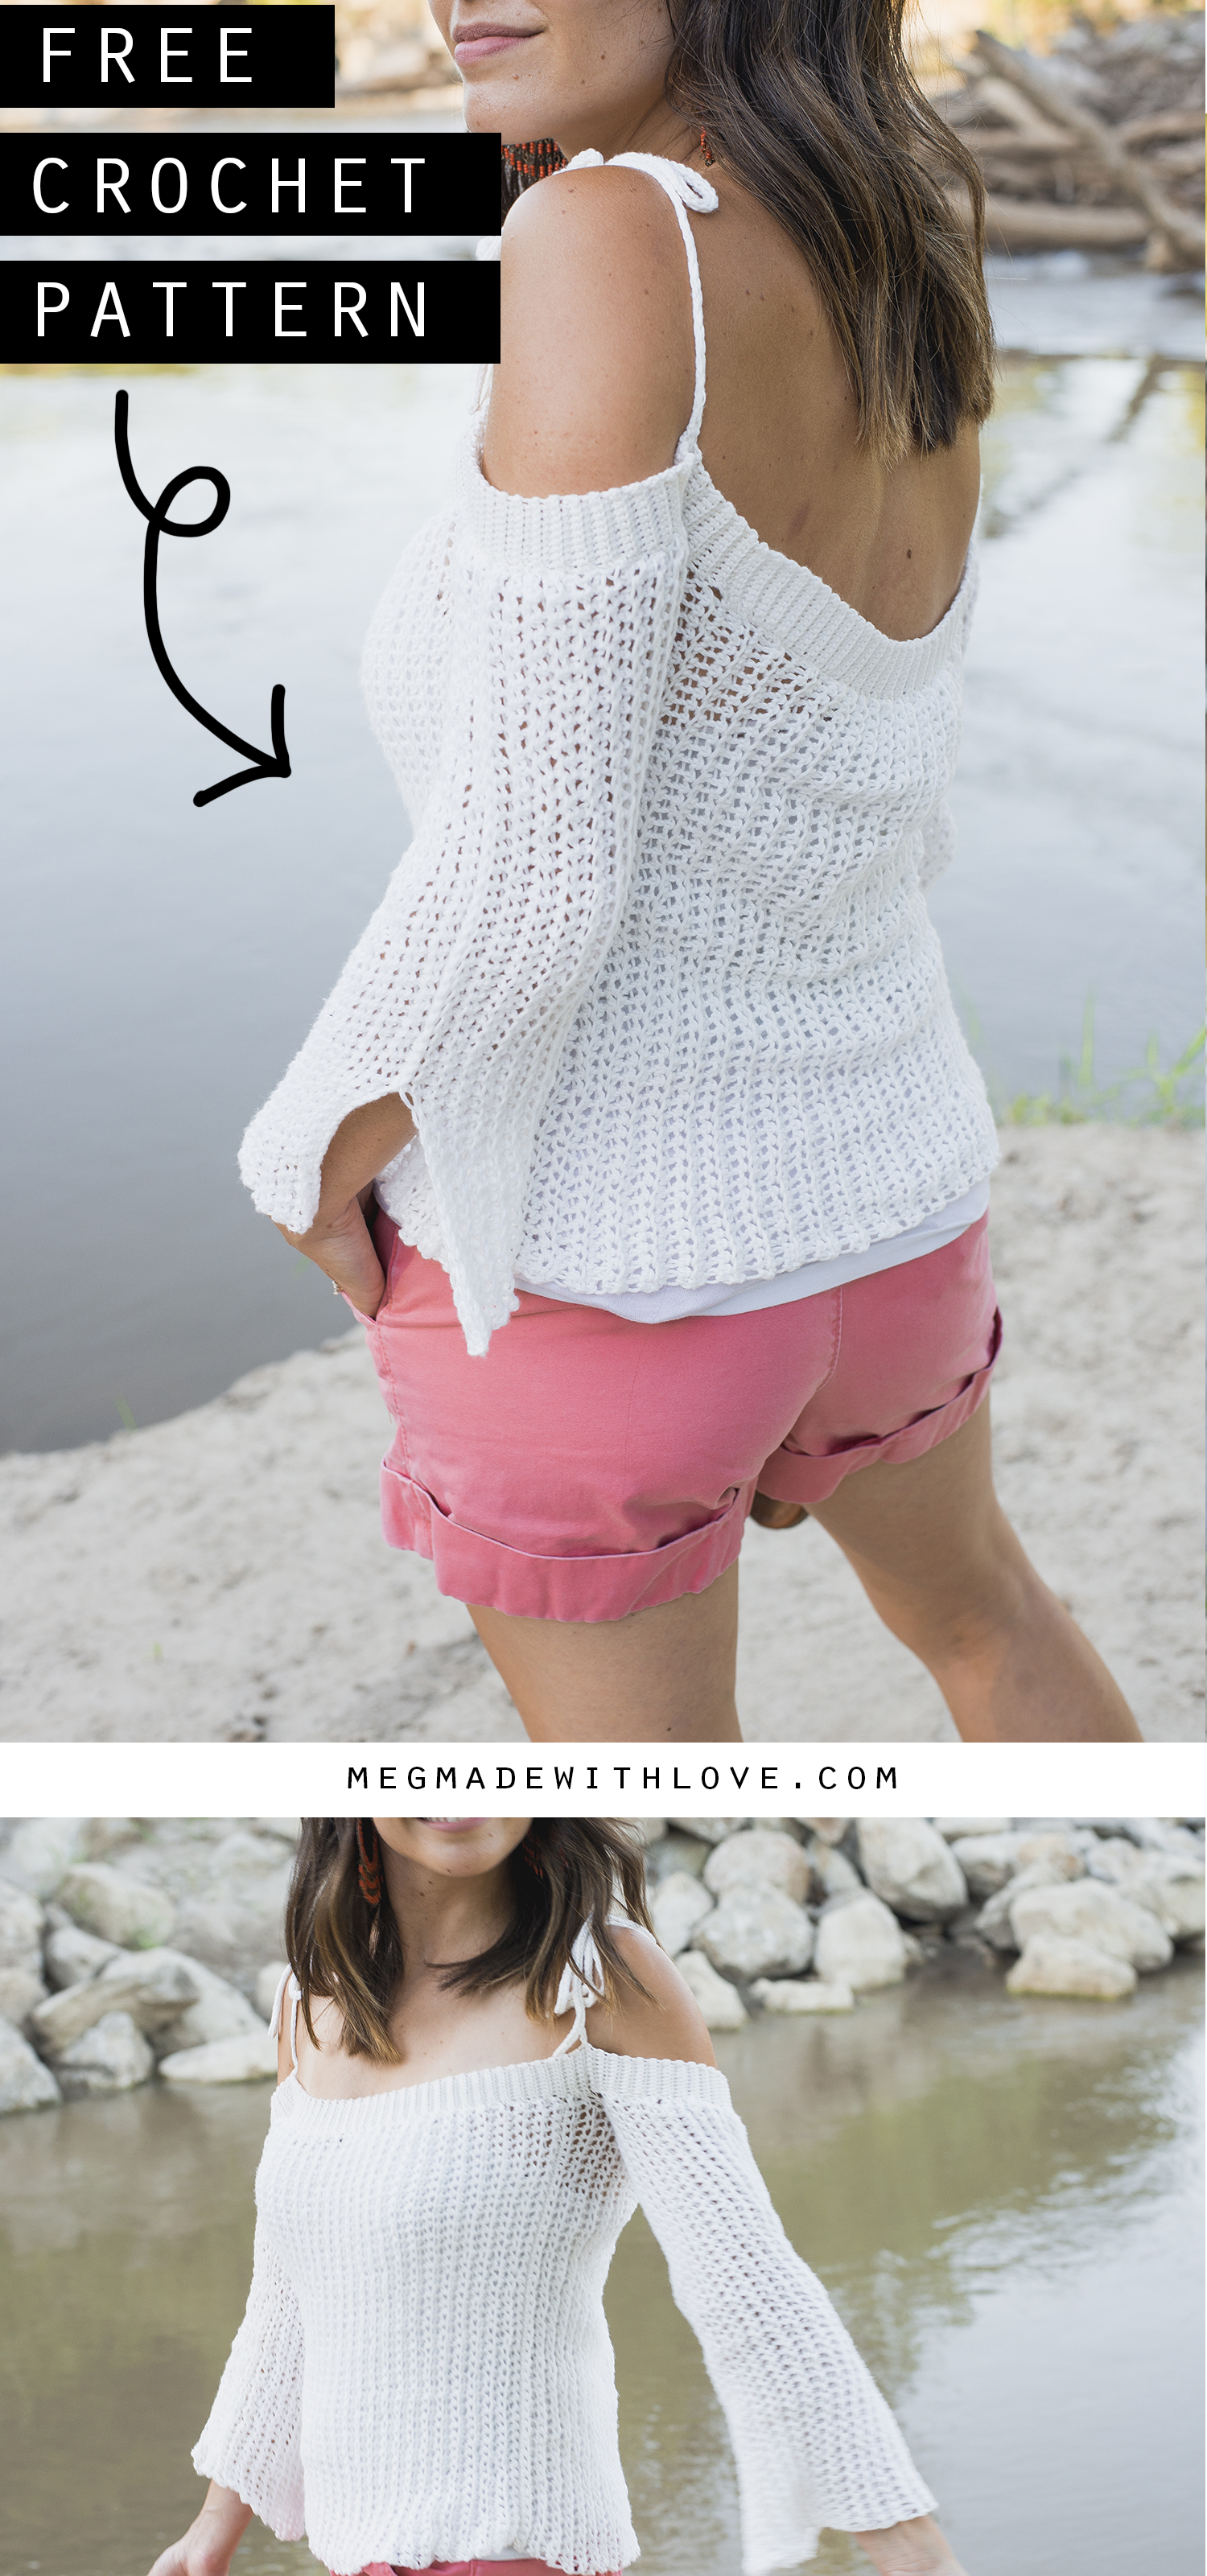 Free Crochet Pattern for the Sunset Sweater - Megmade with Love